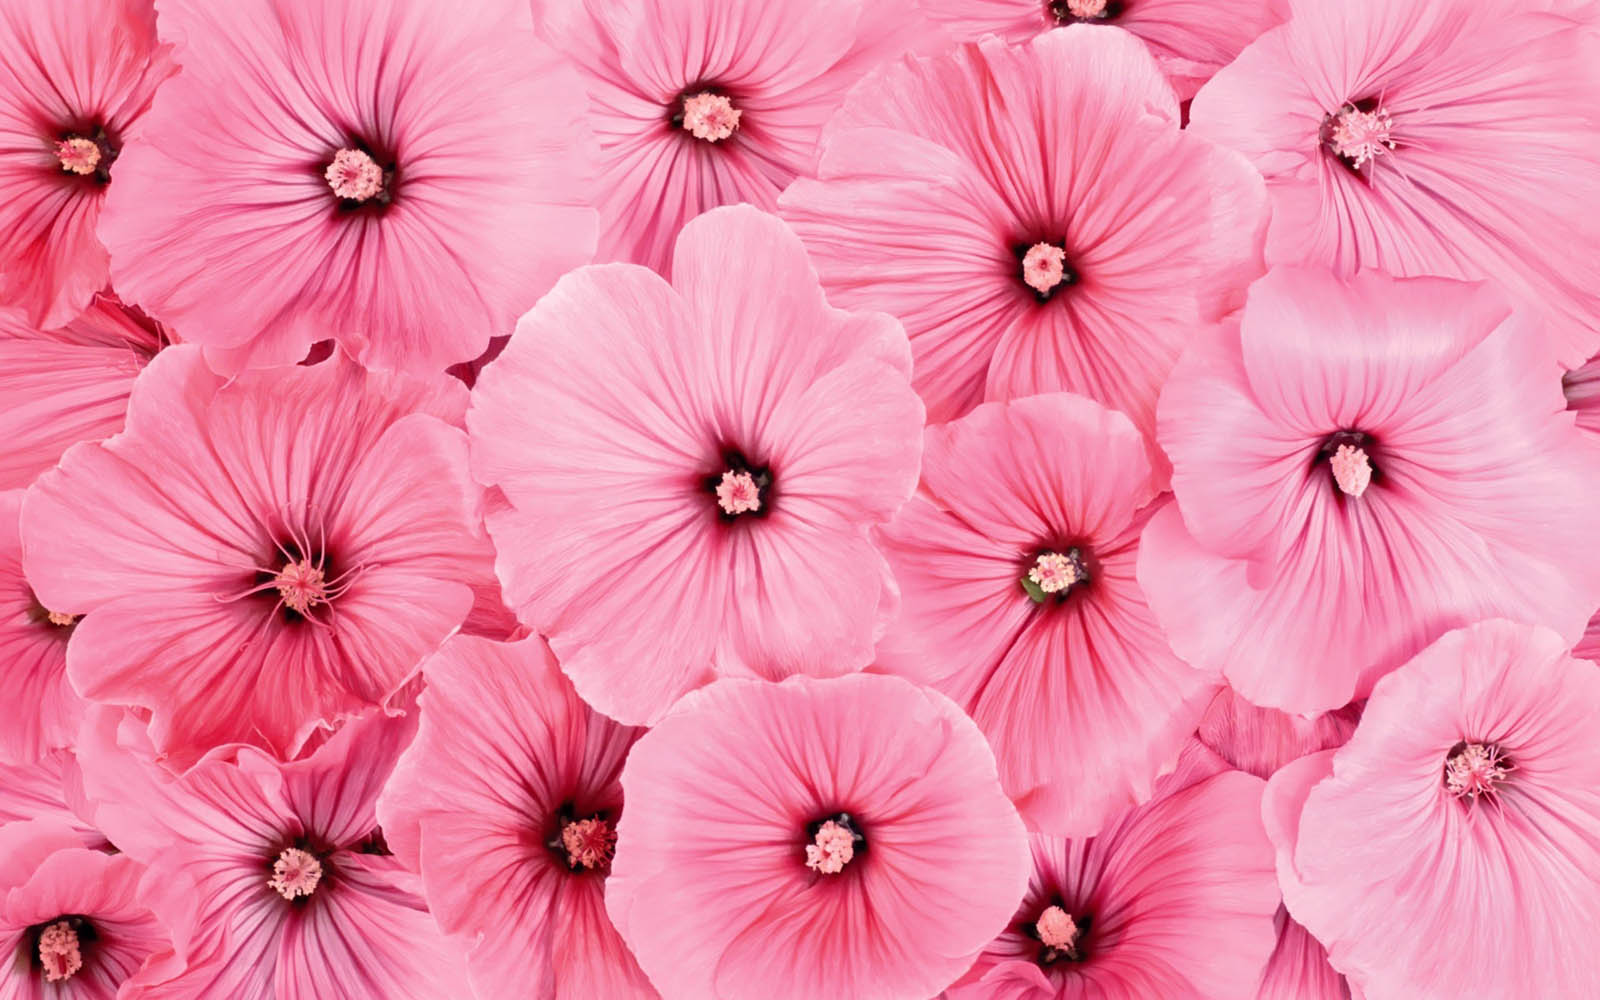 wallpaper pink flowered flower - photo #2